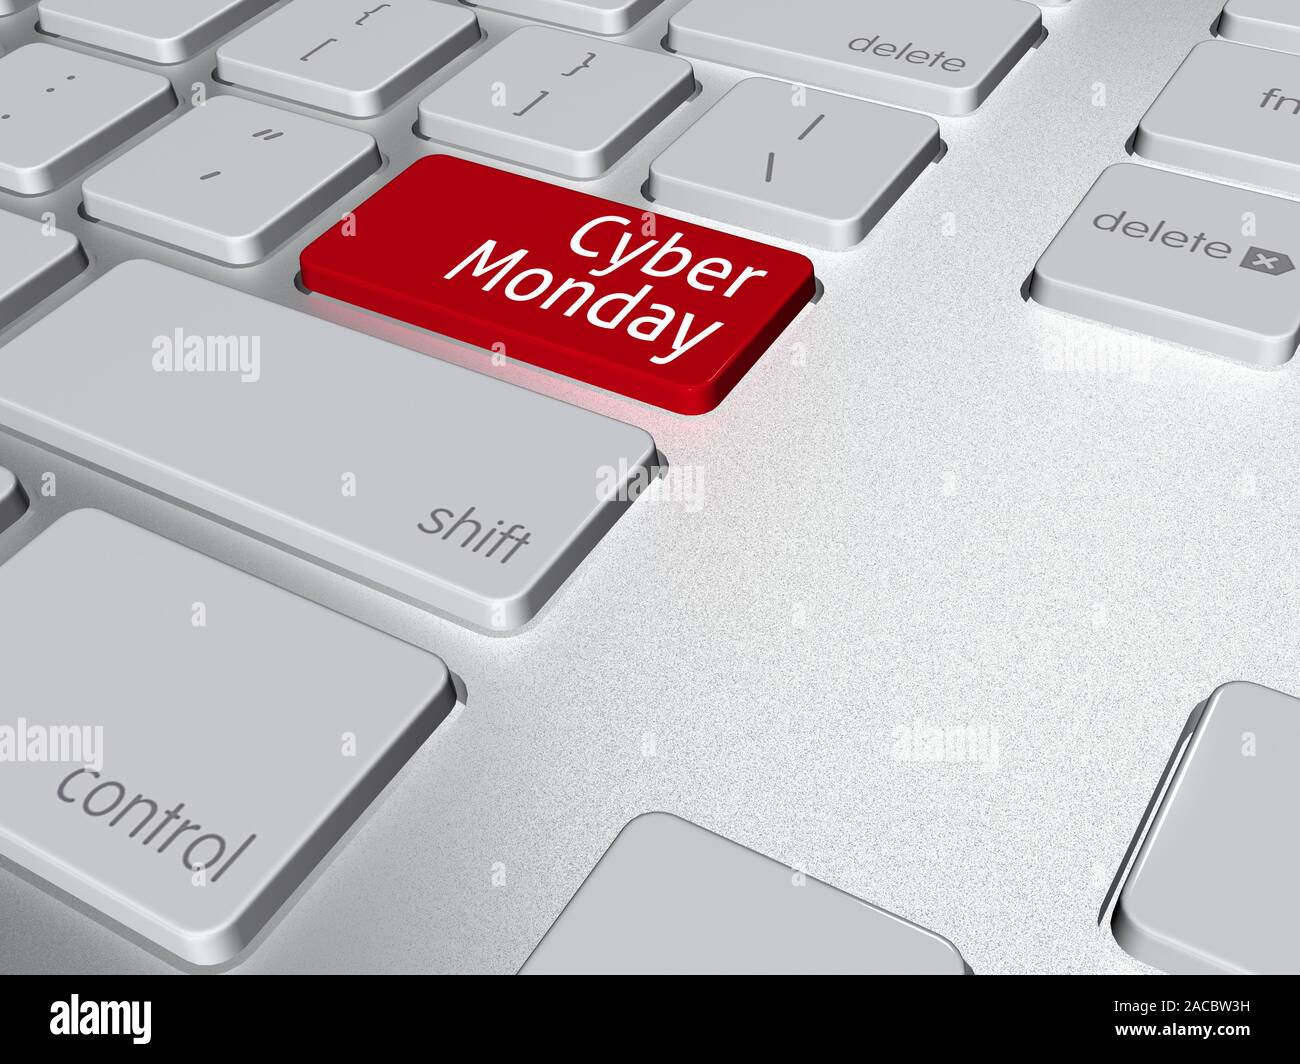 Computer Keyboard And Enter Key With Cyber Monday Text Over 3d Illustration Stock Photo Alamy